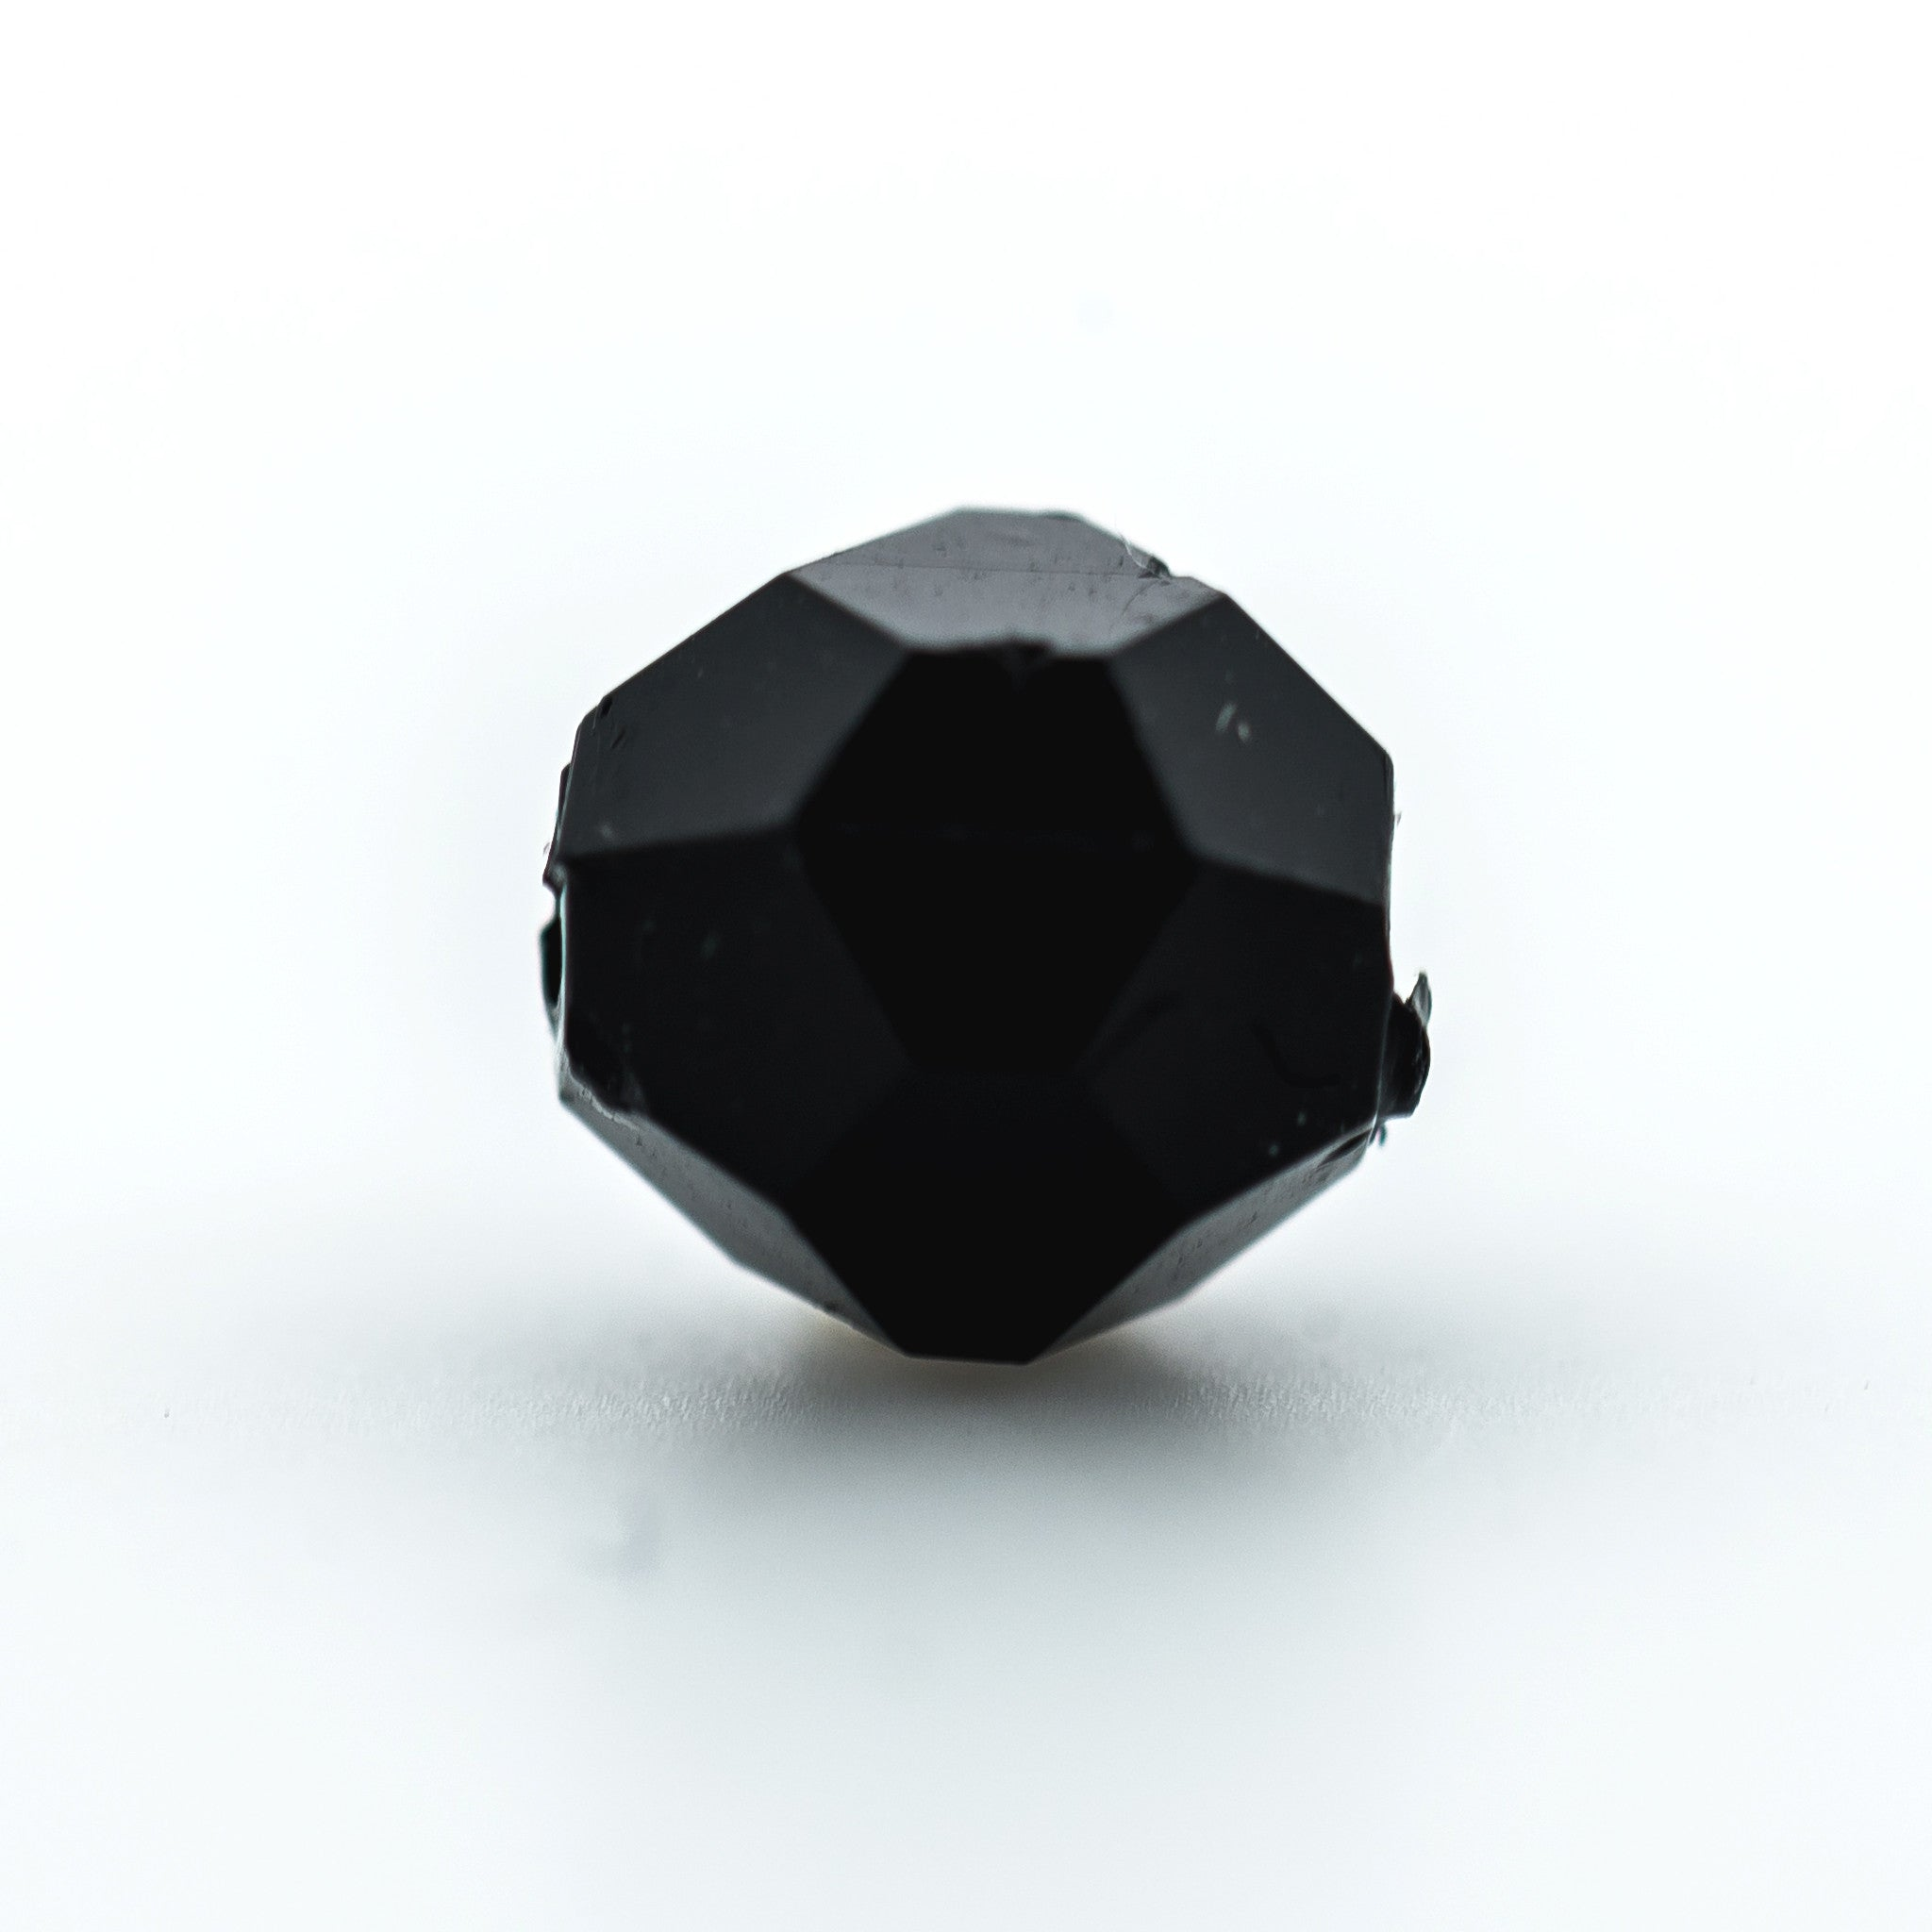 6MM Black Faceted Round Bead (400 pieces)